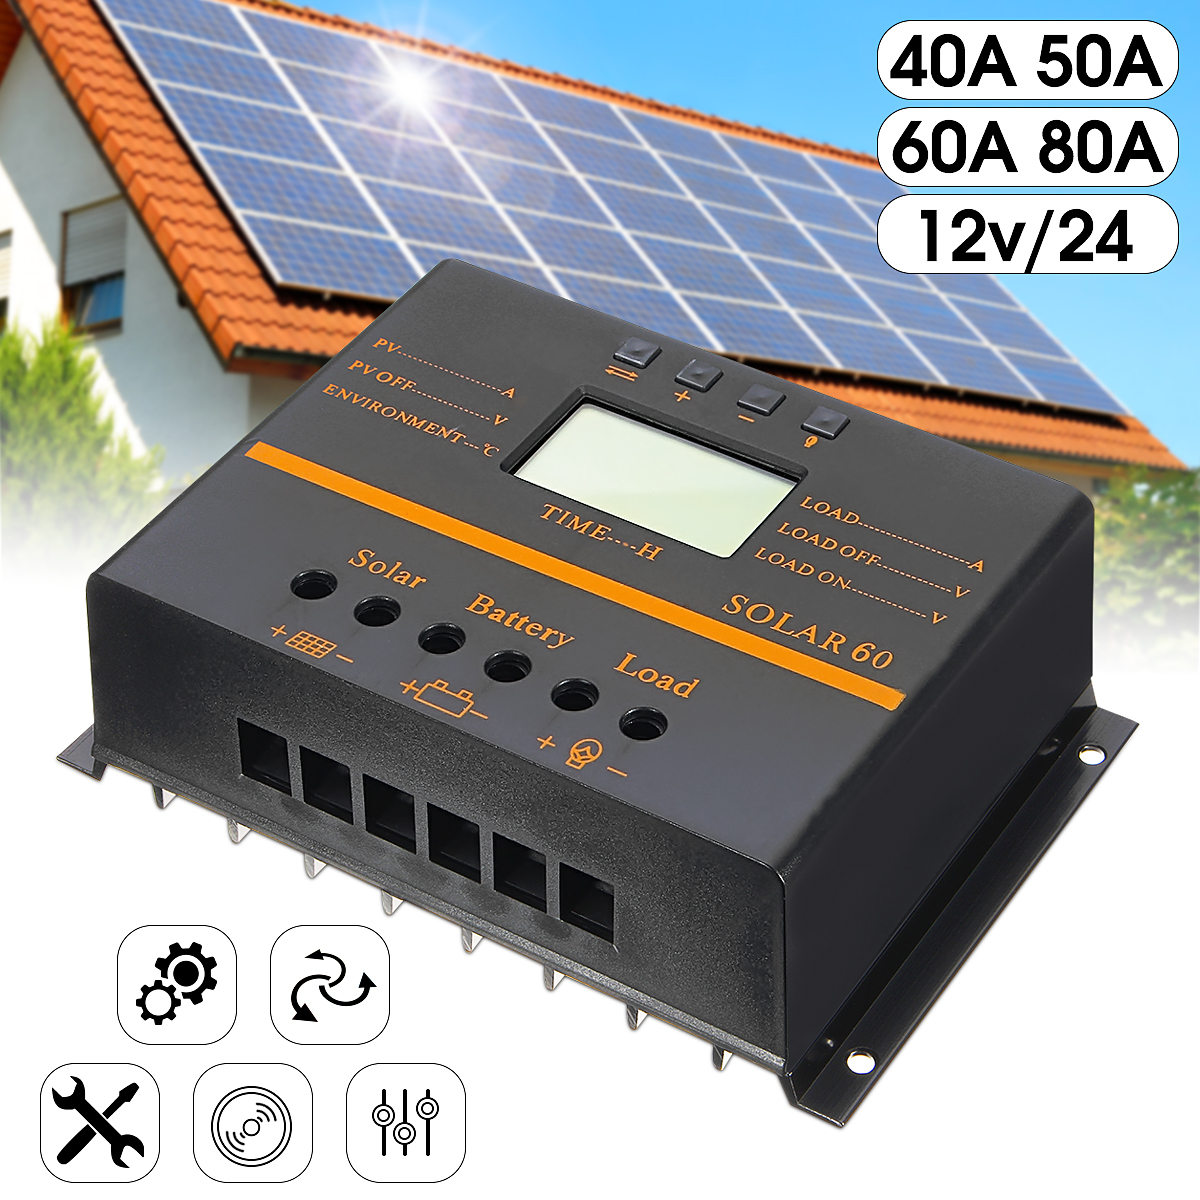 12V/24V Auto LCD Display Solar Panel Charge Controller Battery PWM Regulator USB 40A/50A/60A/80A Overload Protection Automatic